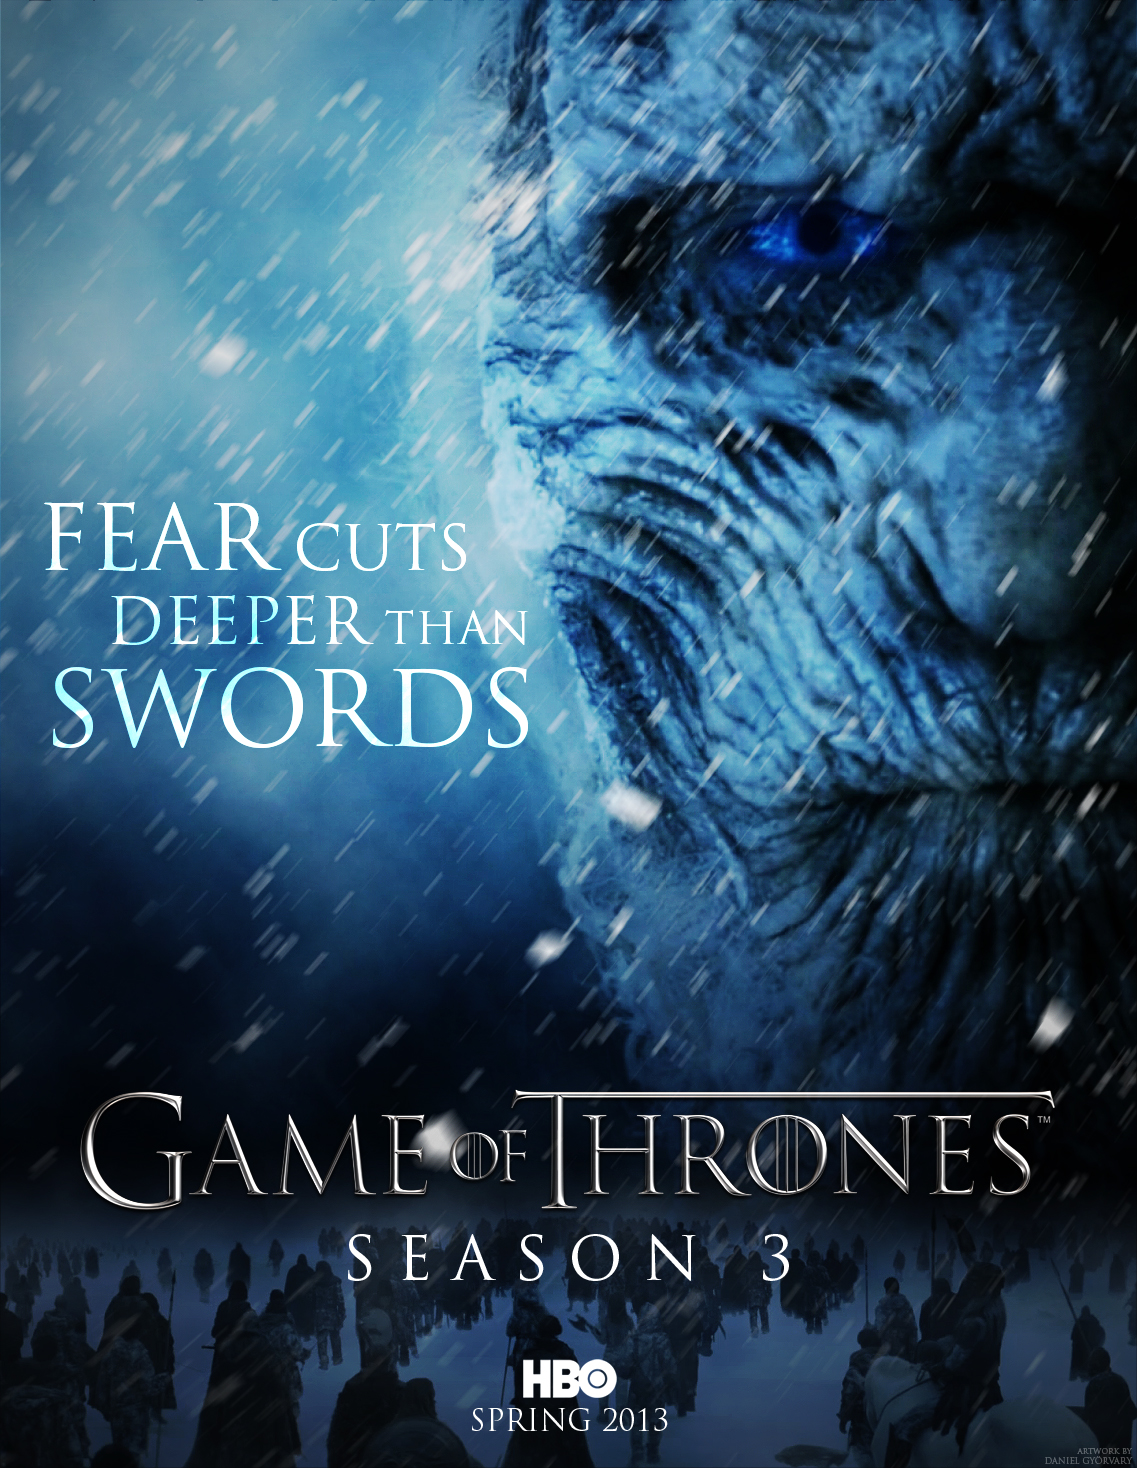 Game of Thrones - Fear Cuts Deeper Than Swords by SYL4R32